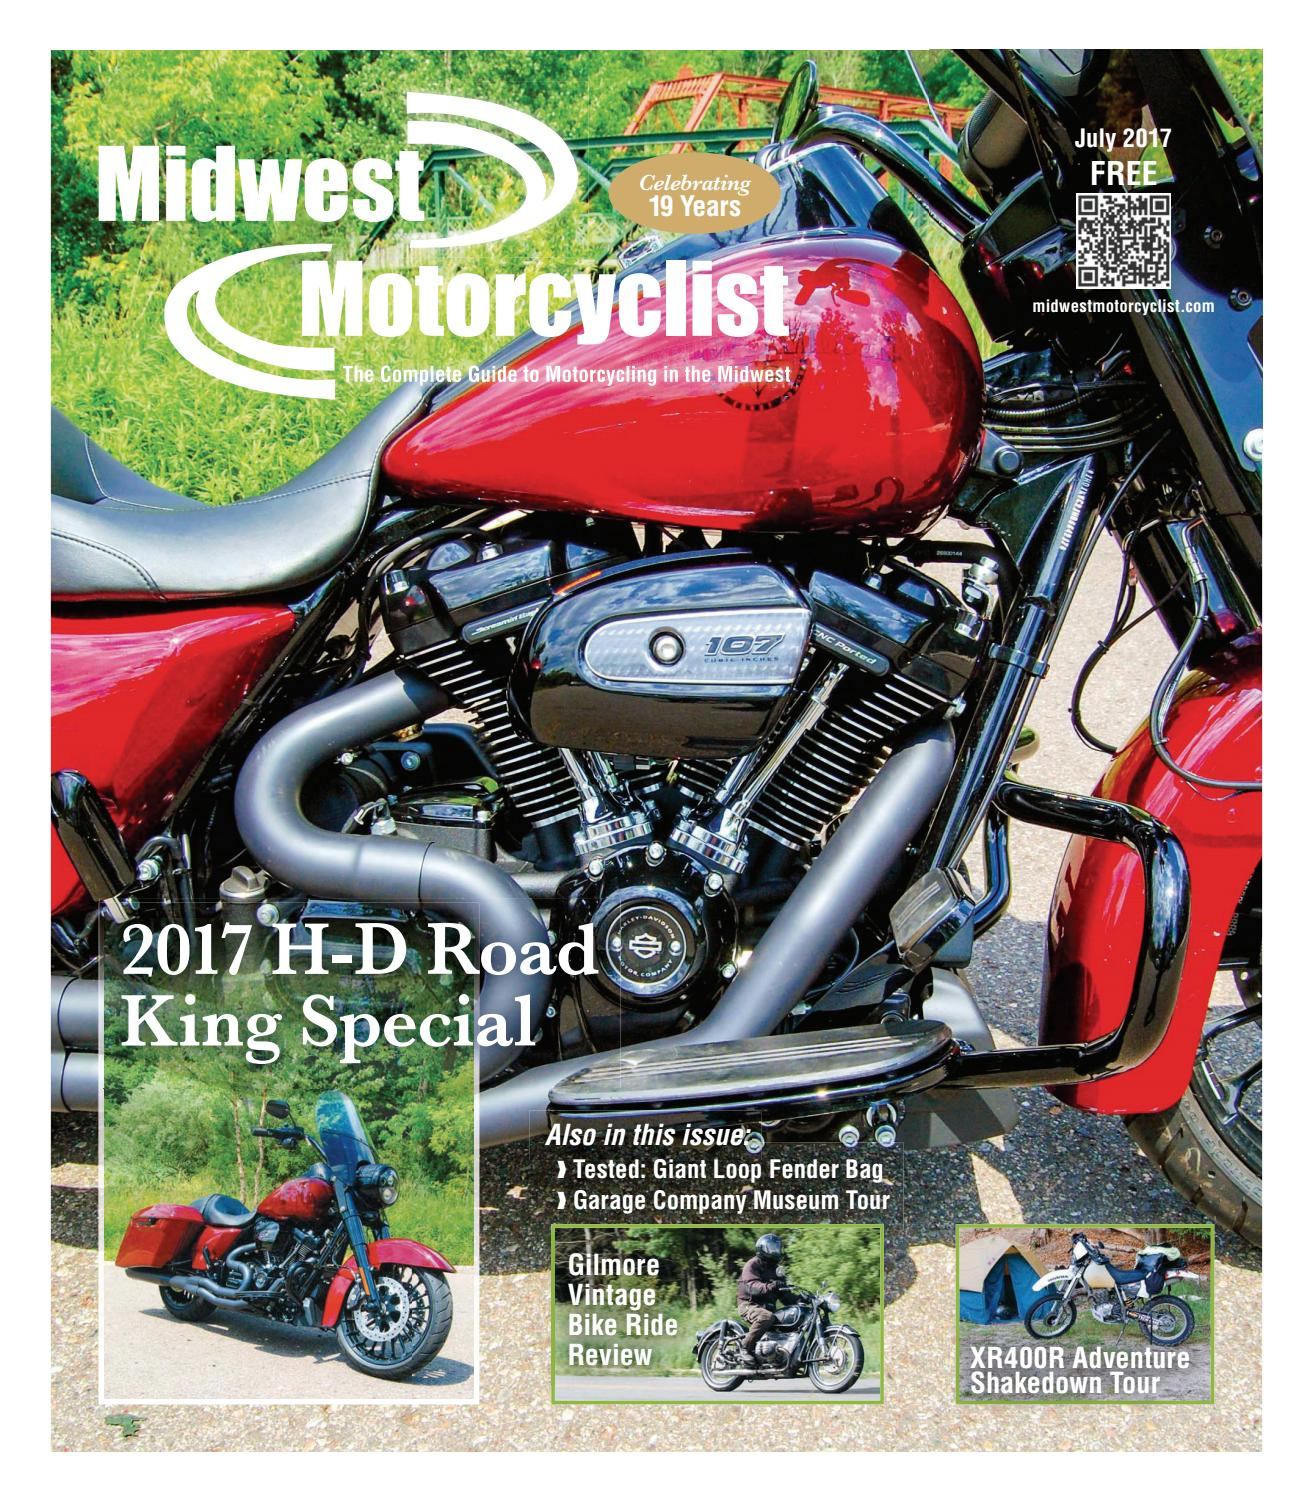 hight resolution of midwest motorcyclist tm july 2017 issue by midwest motorcyclist issuu